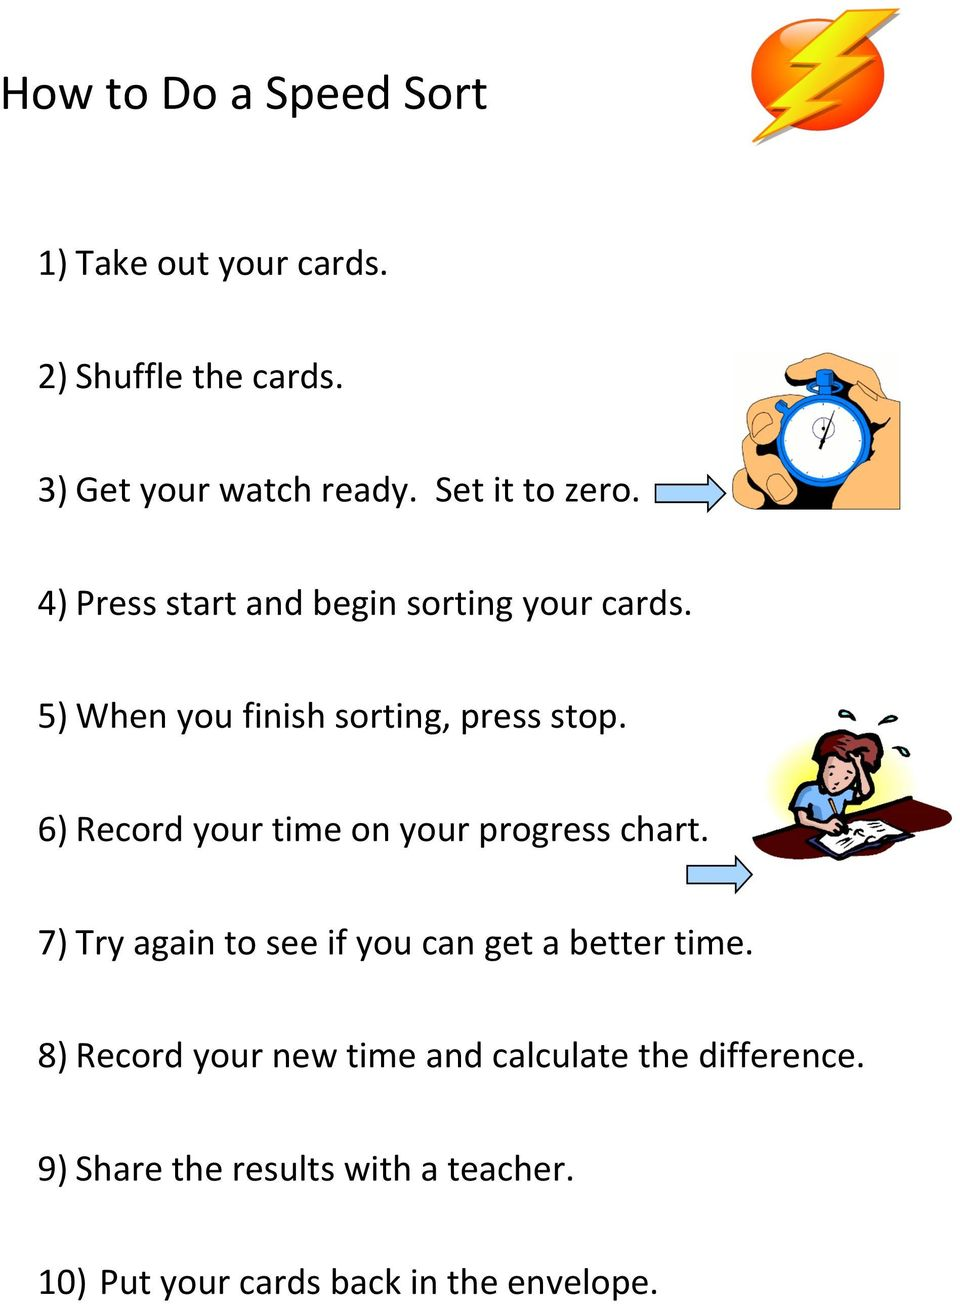 6) Record your time on your progress chart. 7) Try again to see if you can get a better time.